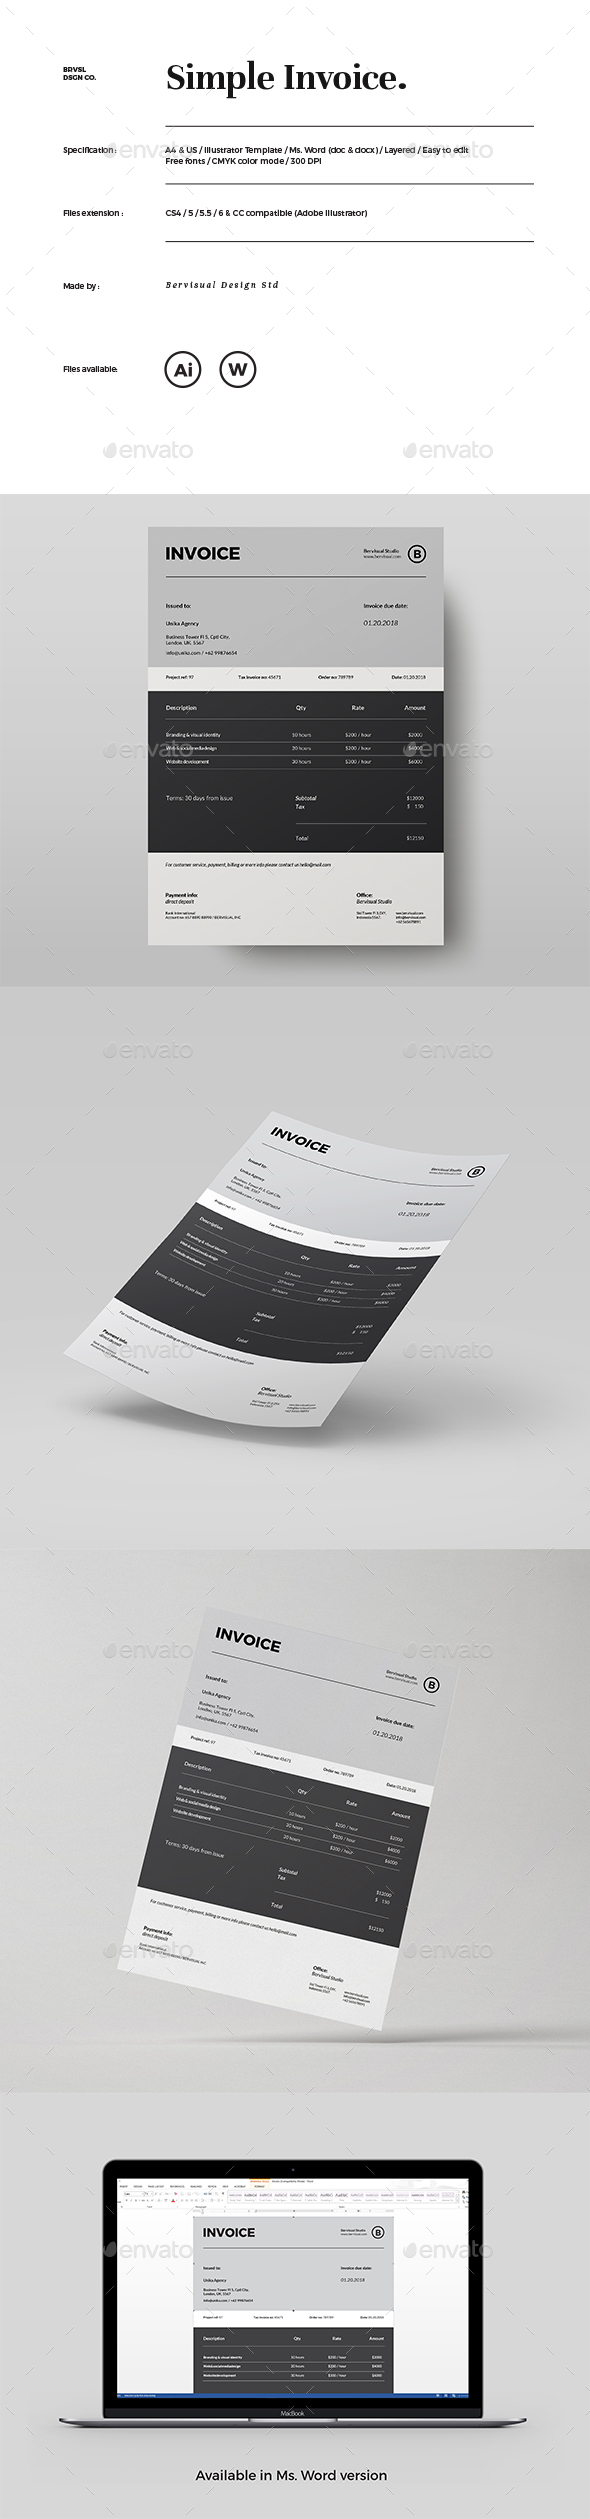 GraphicRiver Simple Invoice 21137619